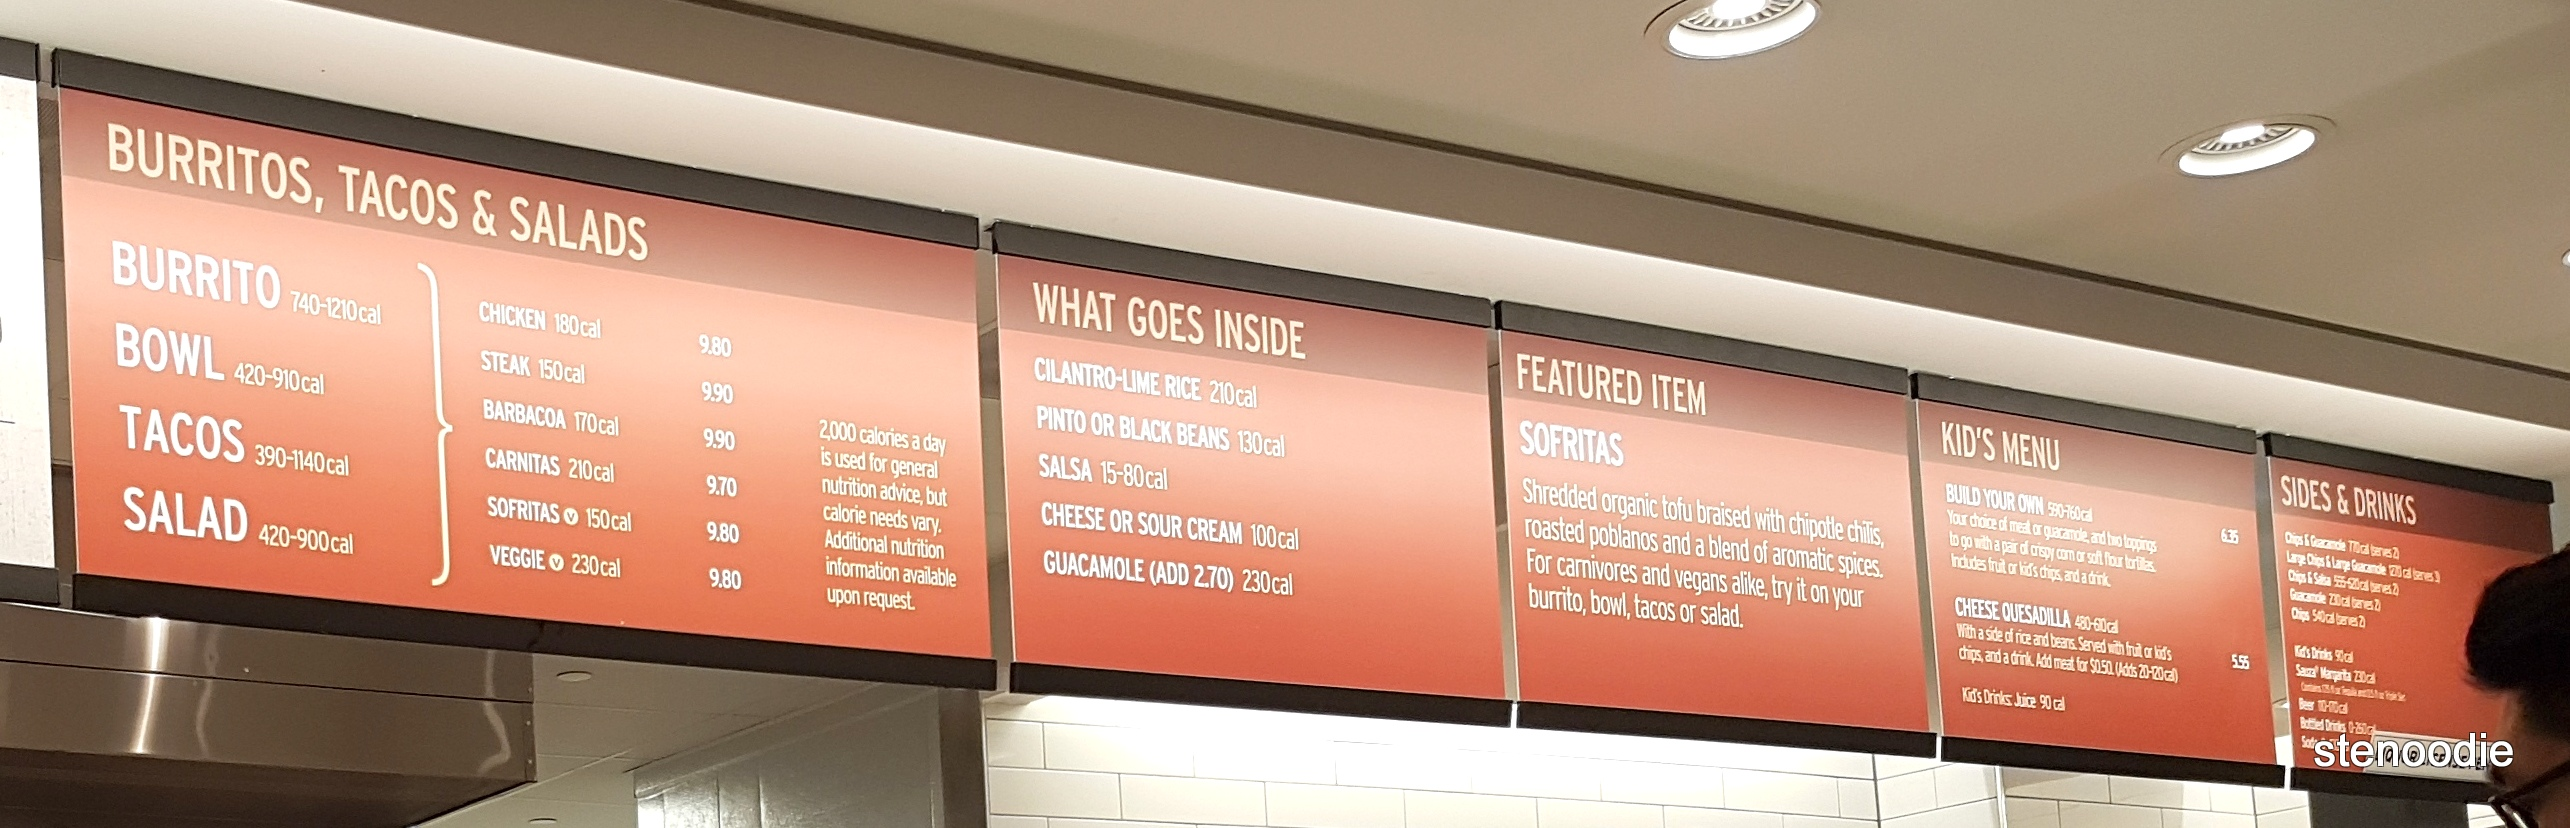 Chipotle menu and prices